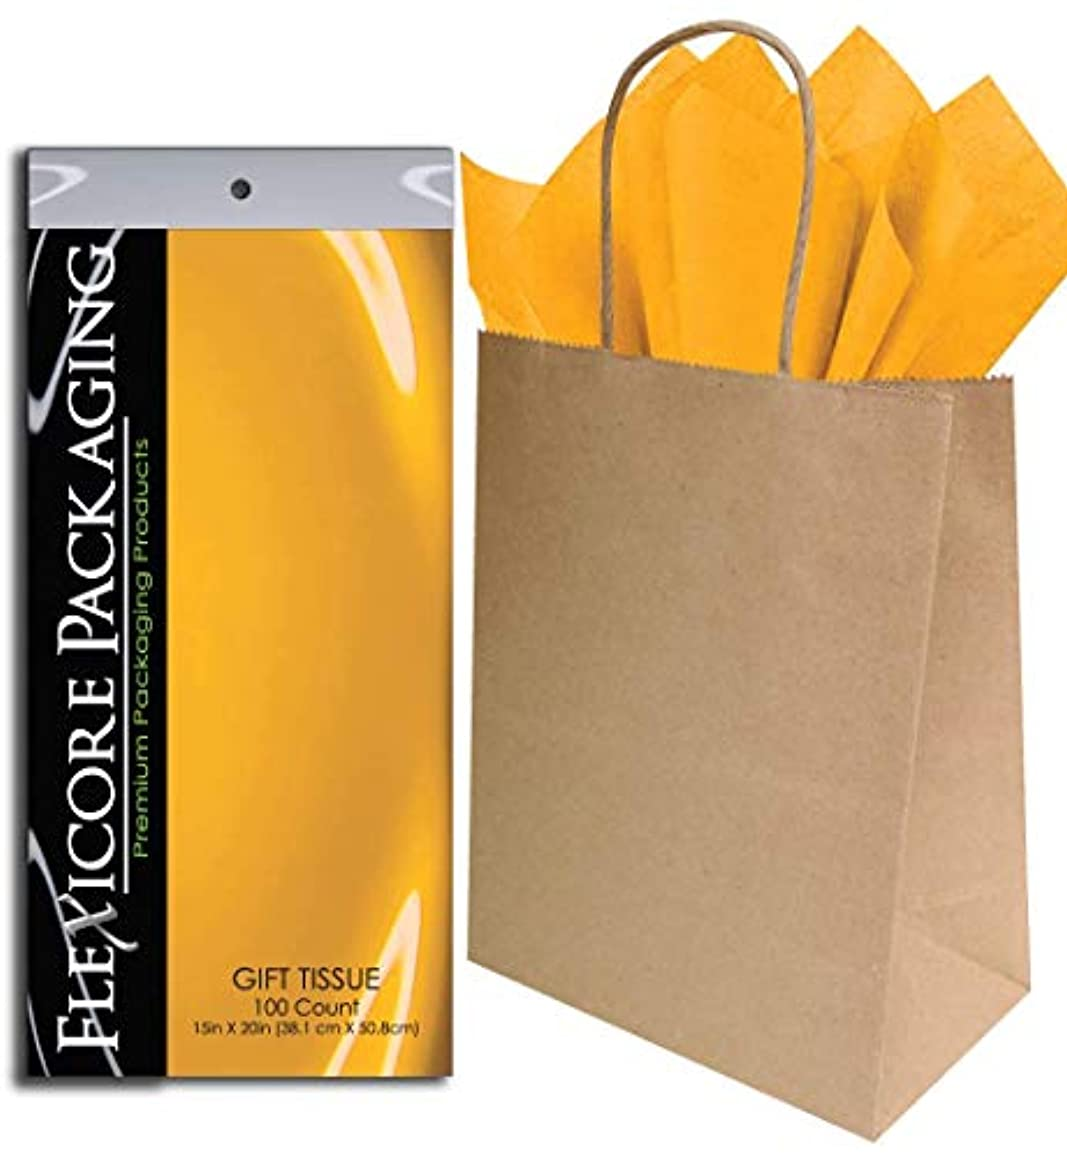 Flexicore Packaging? 50ct Natural Brown Kraft Paper Gift Bags + 100ct Gift Tissue Paper (Goldenrod Yellow)